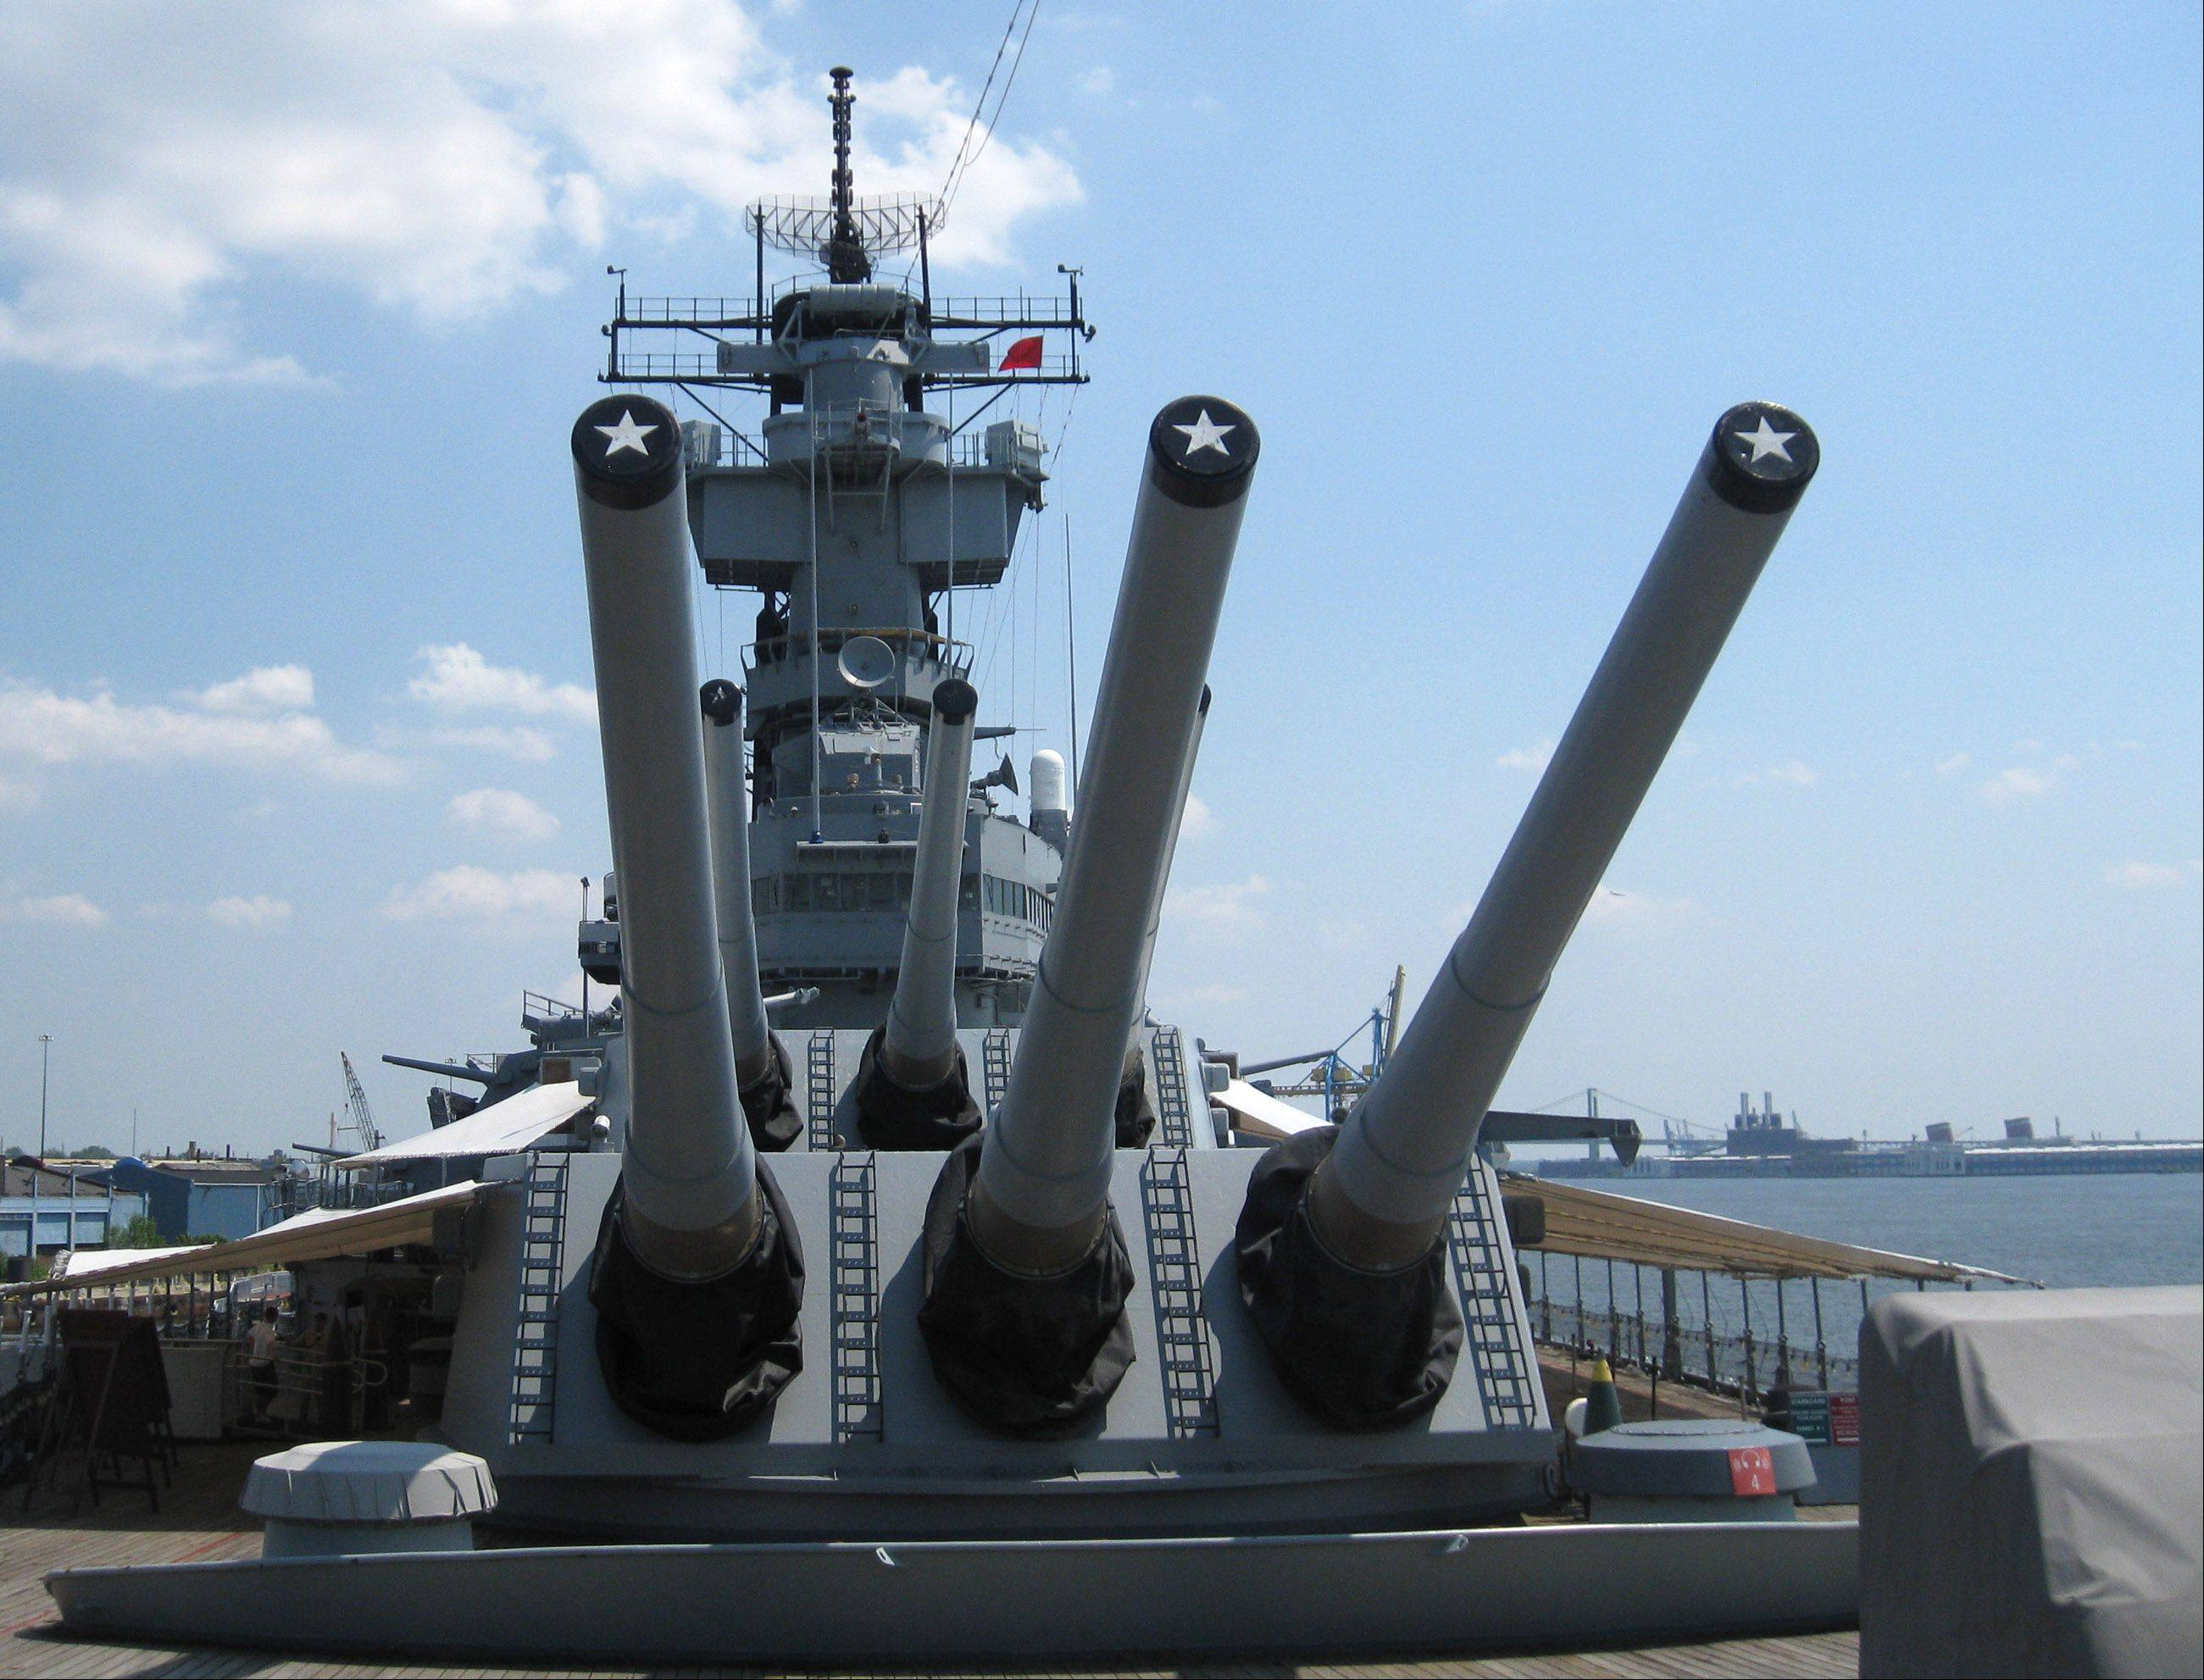 Gene Salvitti of Addison says he took this picture of the battleship USS New Jersey, which is on display in the Delaware River in Philadelphia.